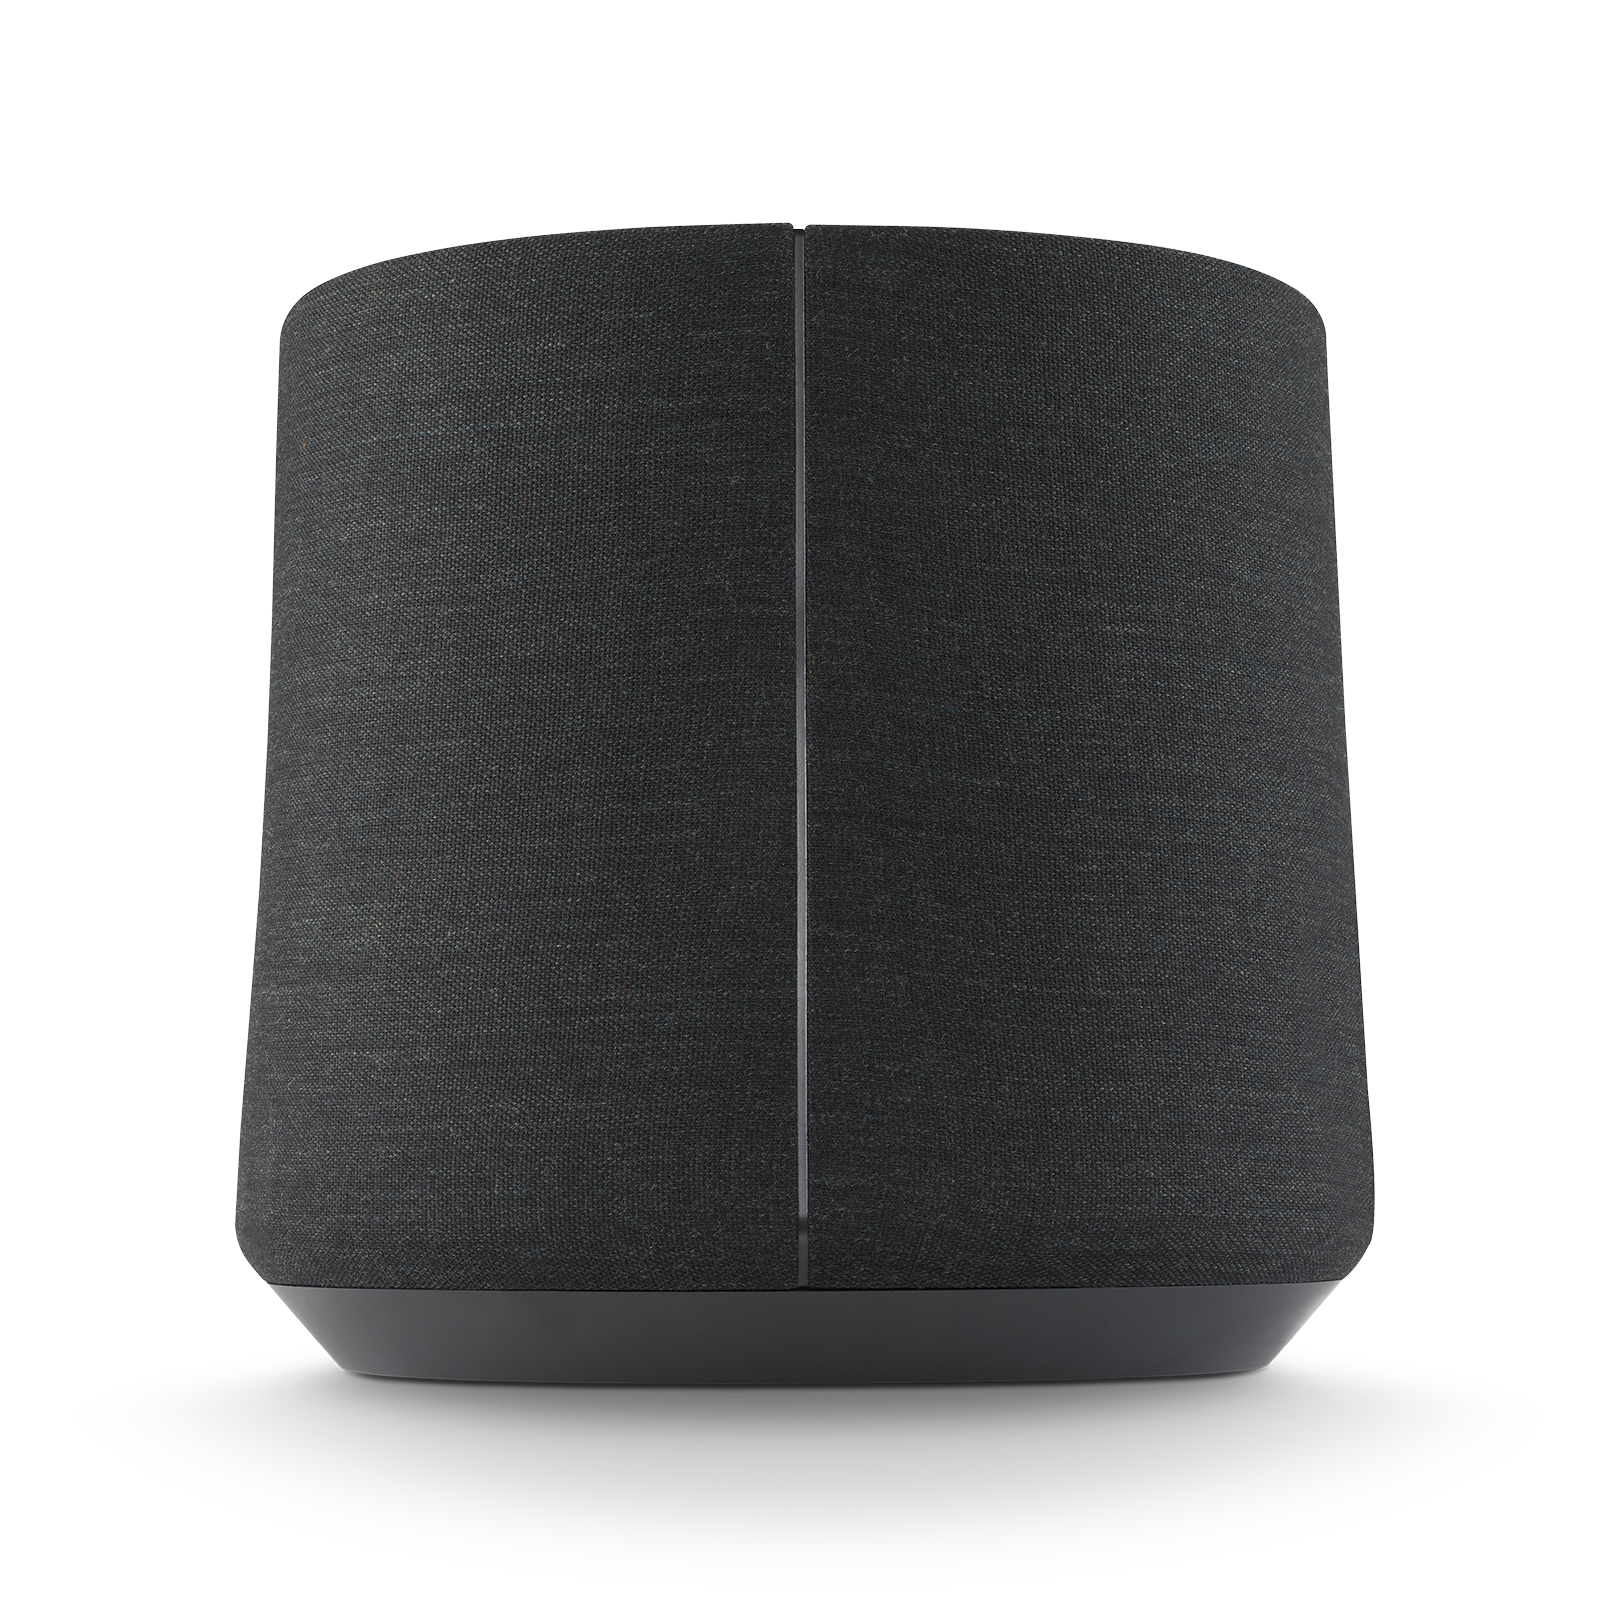 Harman Kardon Citation Sub - Black - Thundering bass for movies and music - Detailshot 3